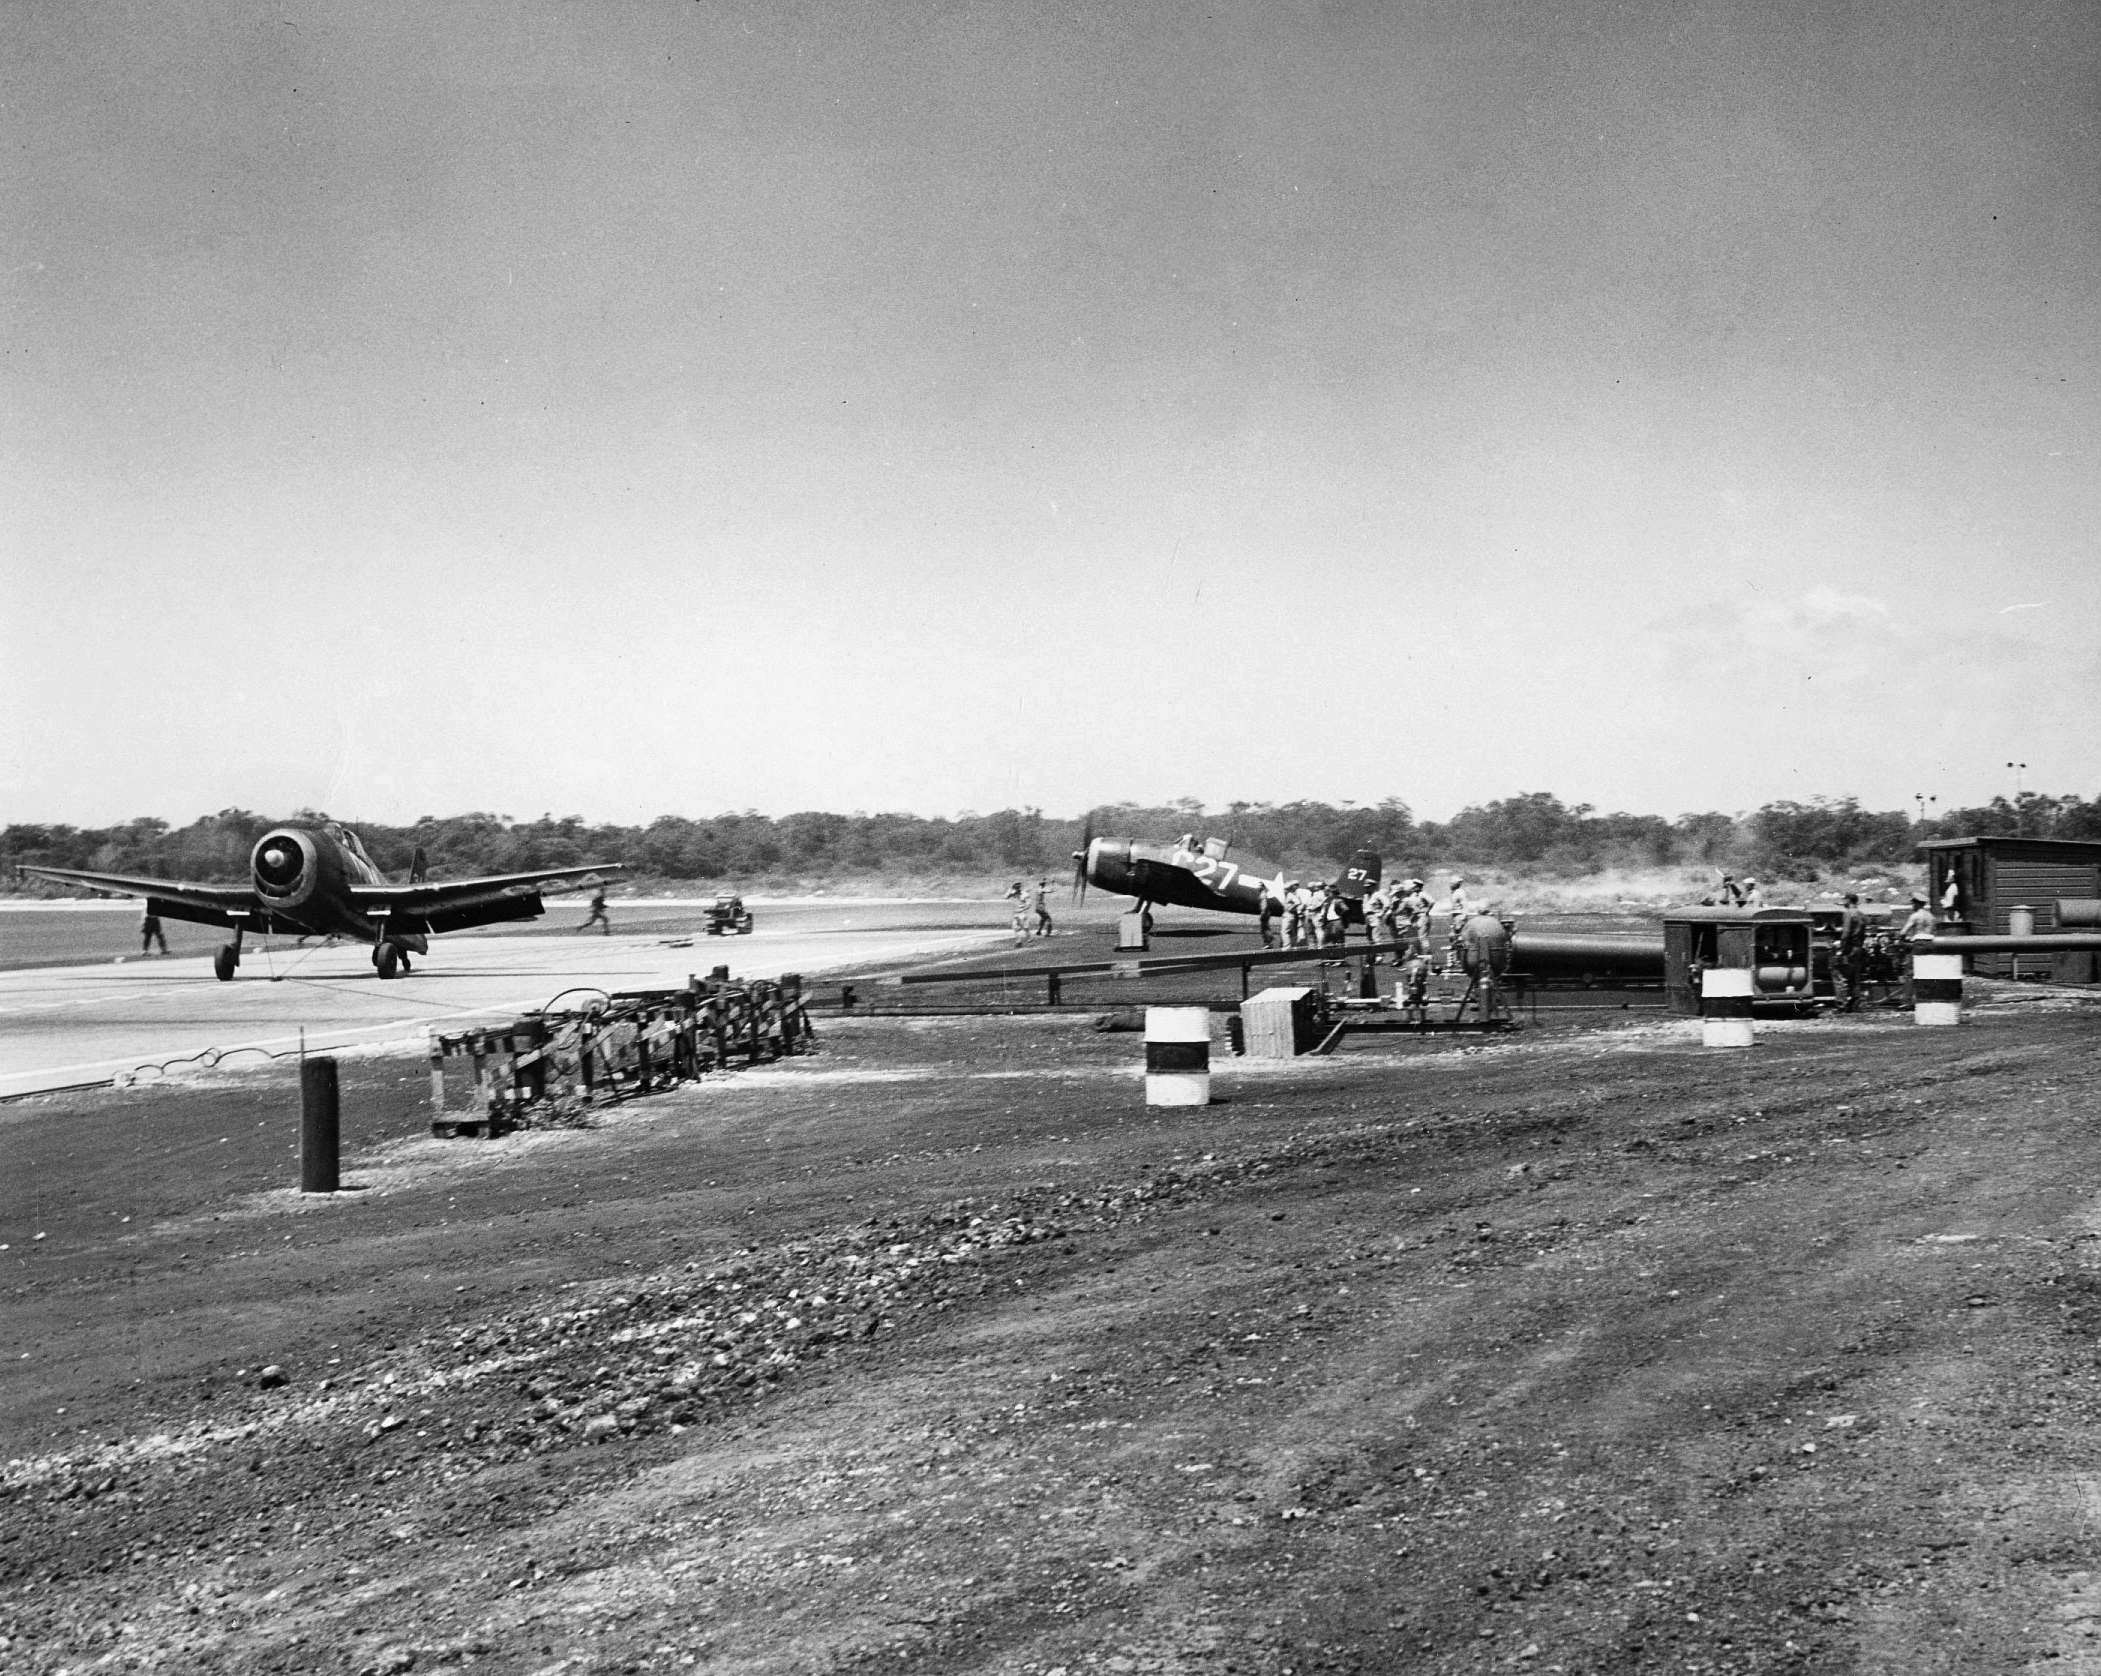 Grumman F6F 5 Hellcat White C34 and C27 using a bridle catapult from NAS Barbers Point HI 1959 01